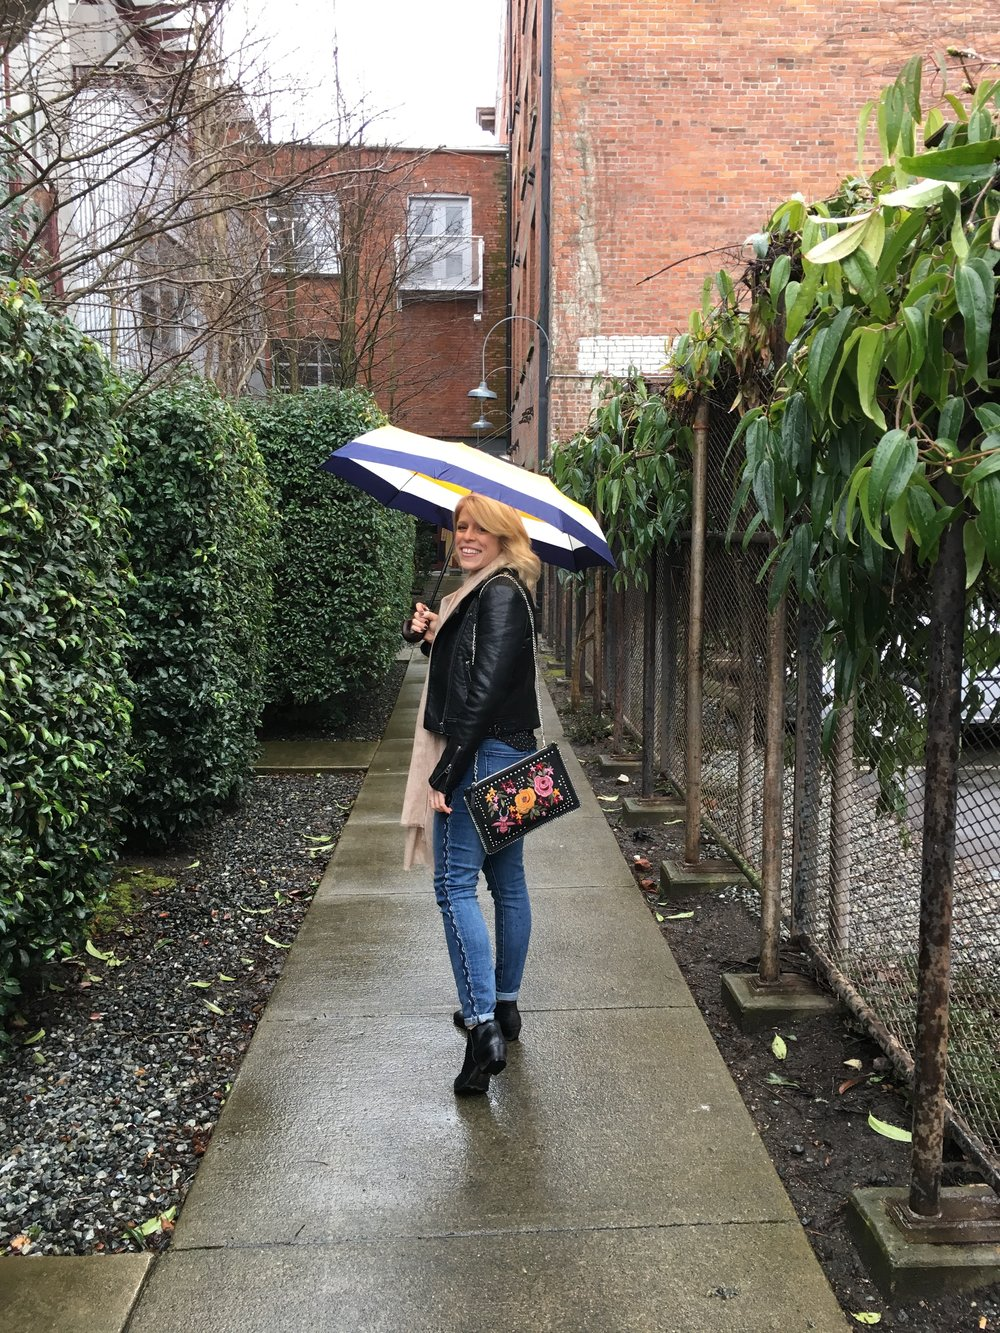 As the rain came I had to pull out my favourite umbrella from   HUDSON BAY